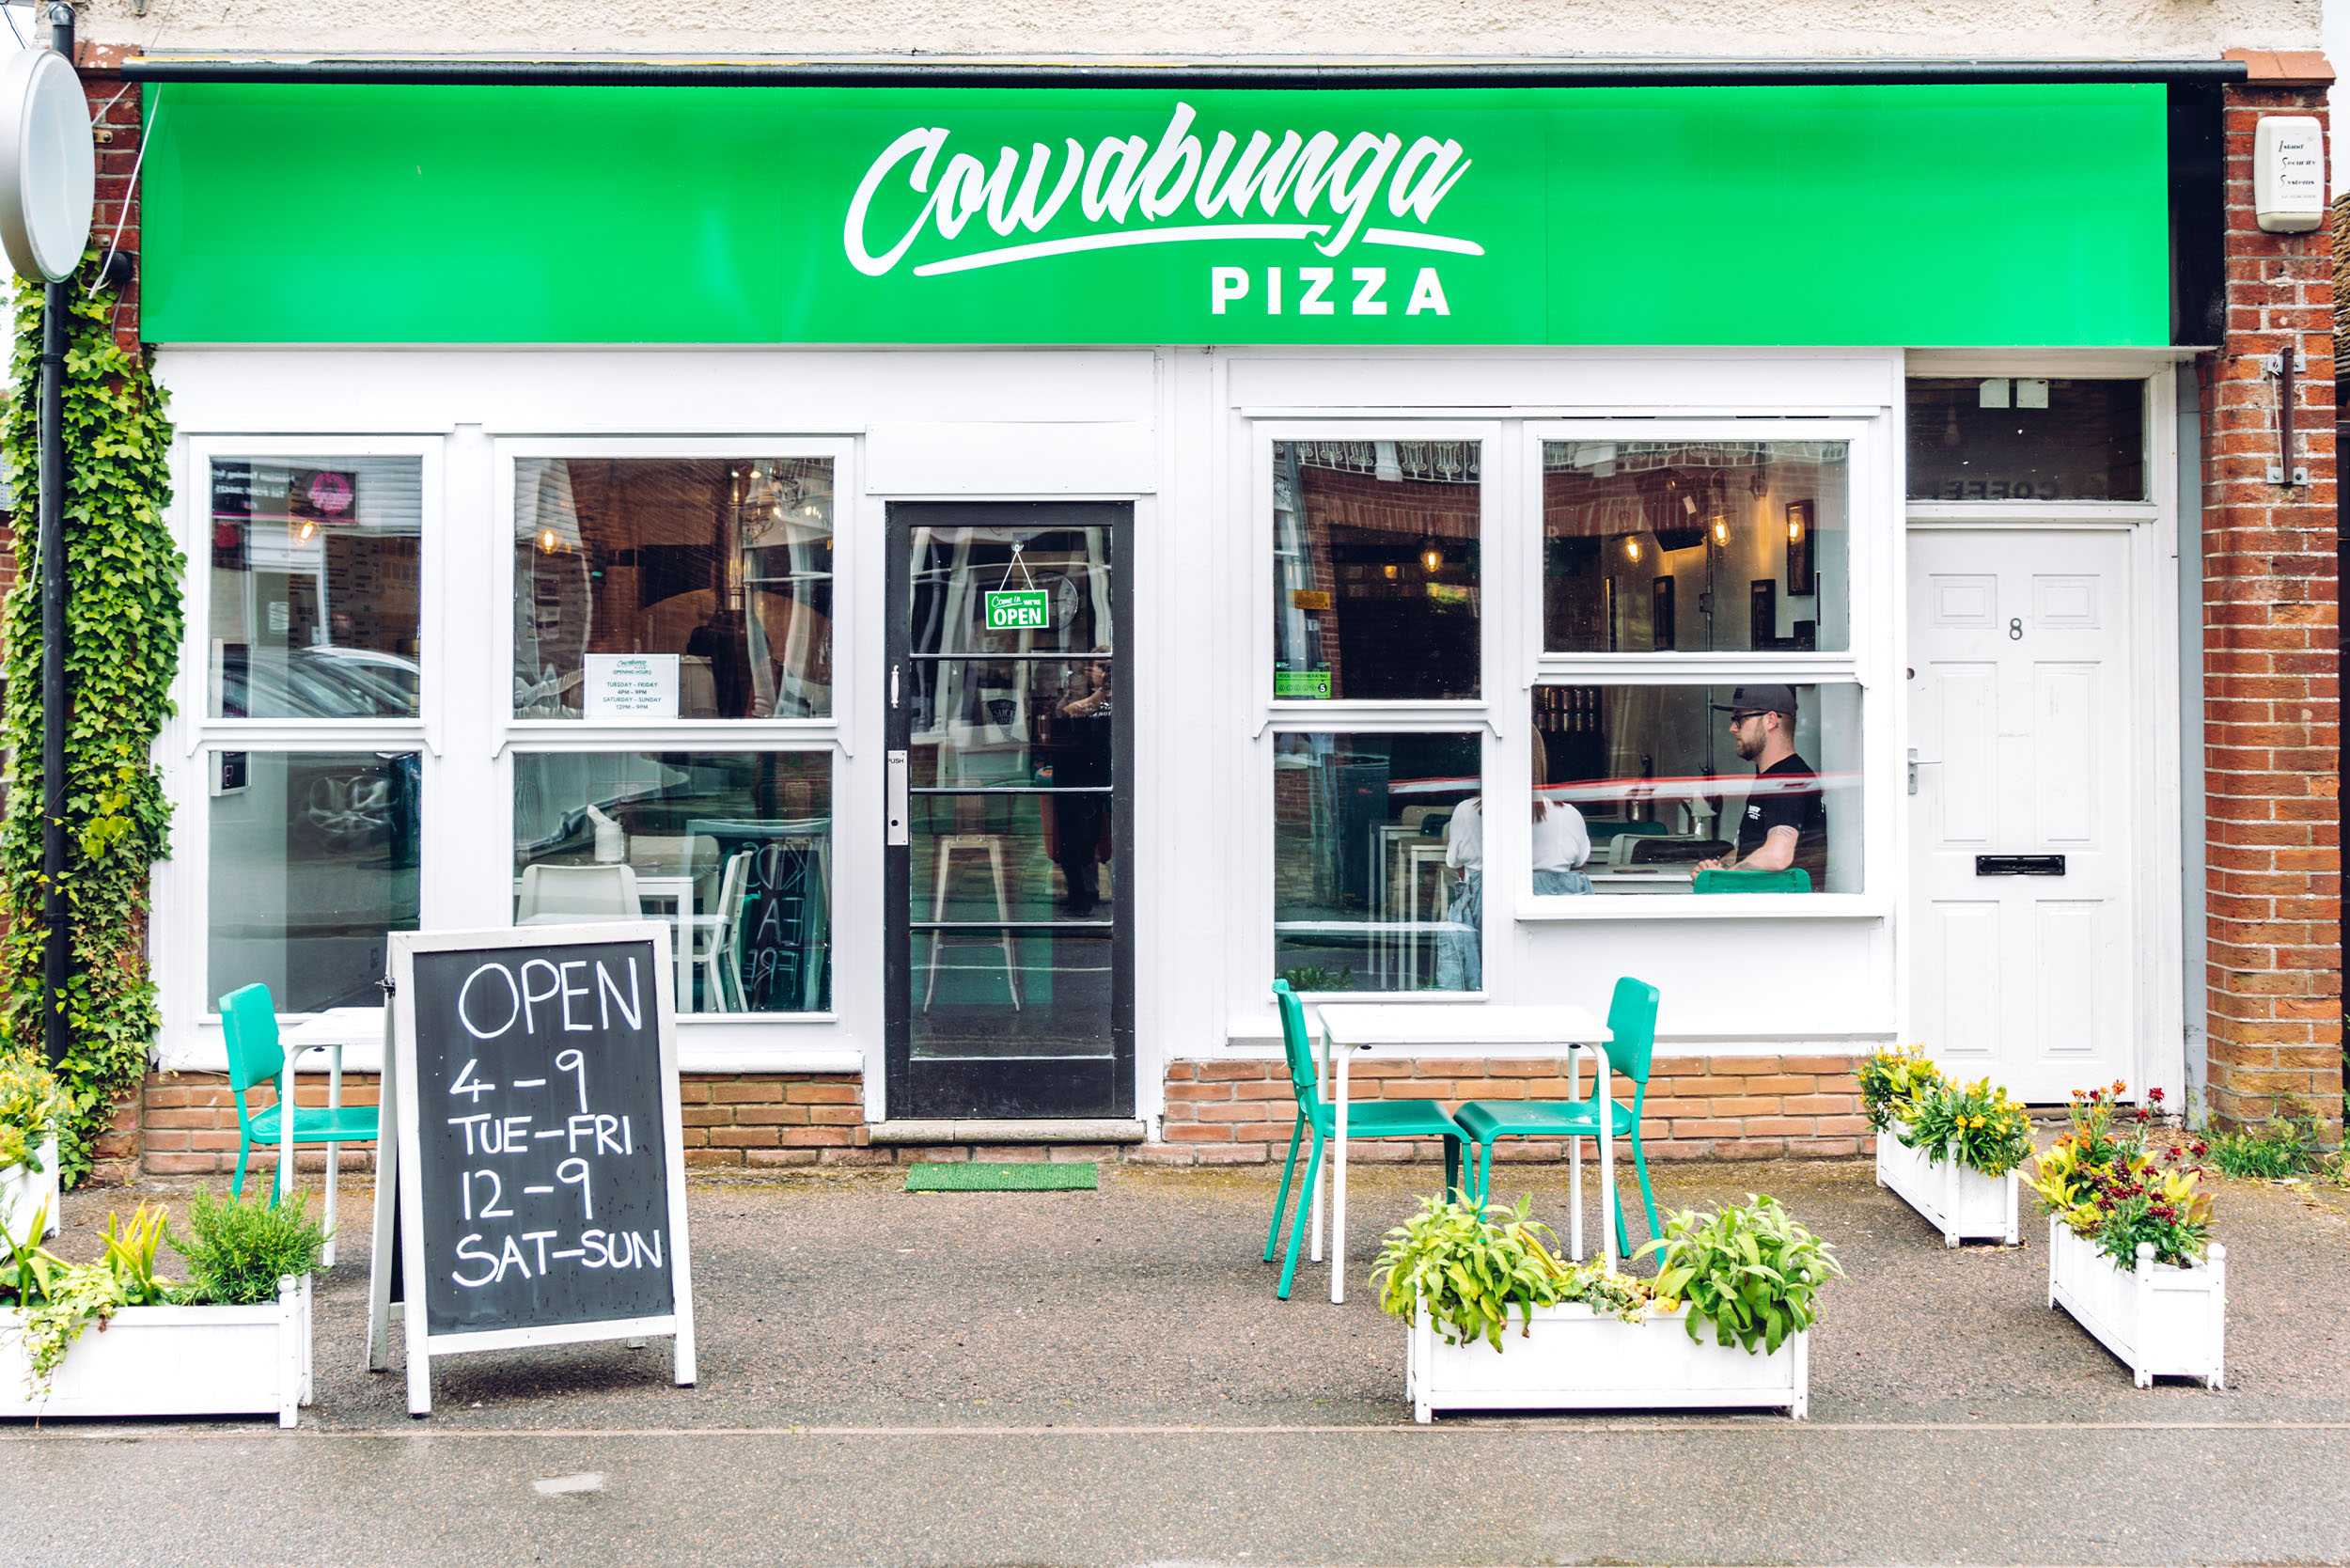 Cowabunga Pizza - West Mersea - Pizza Shop 2.jpg